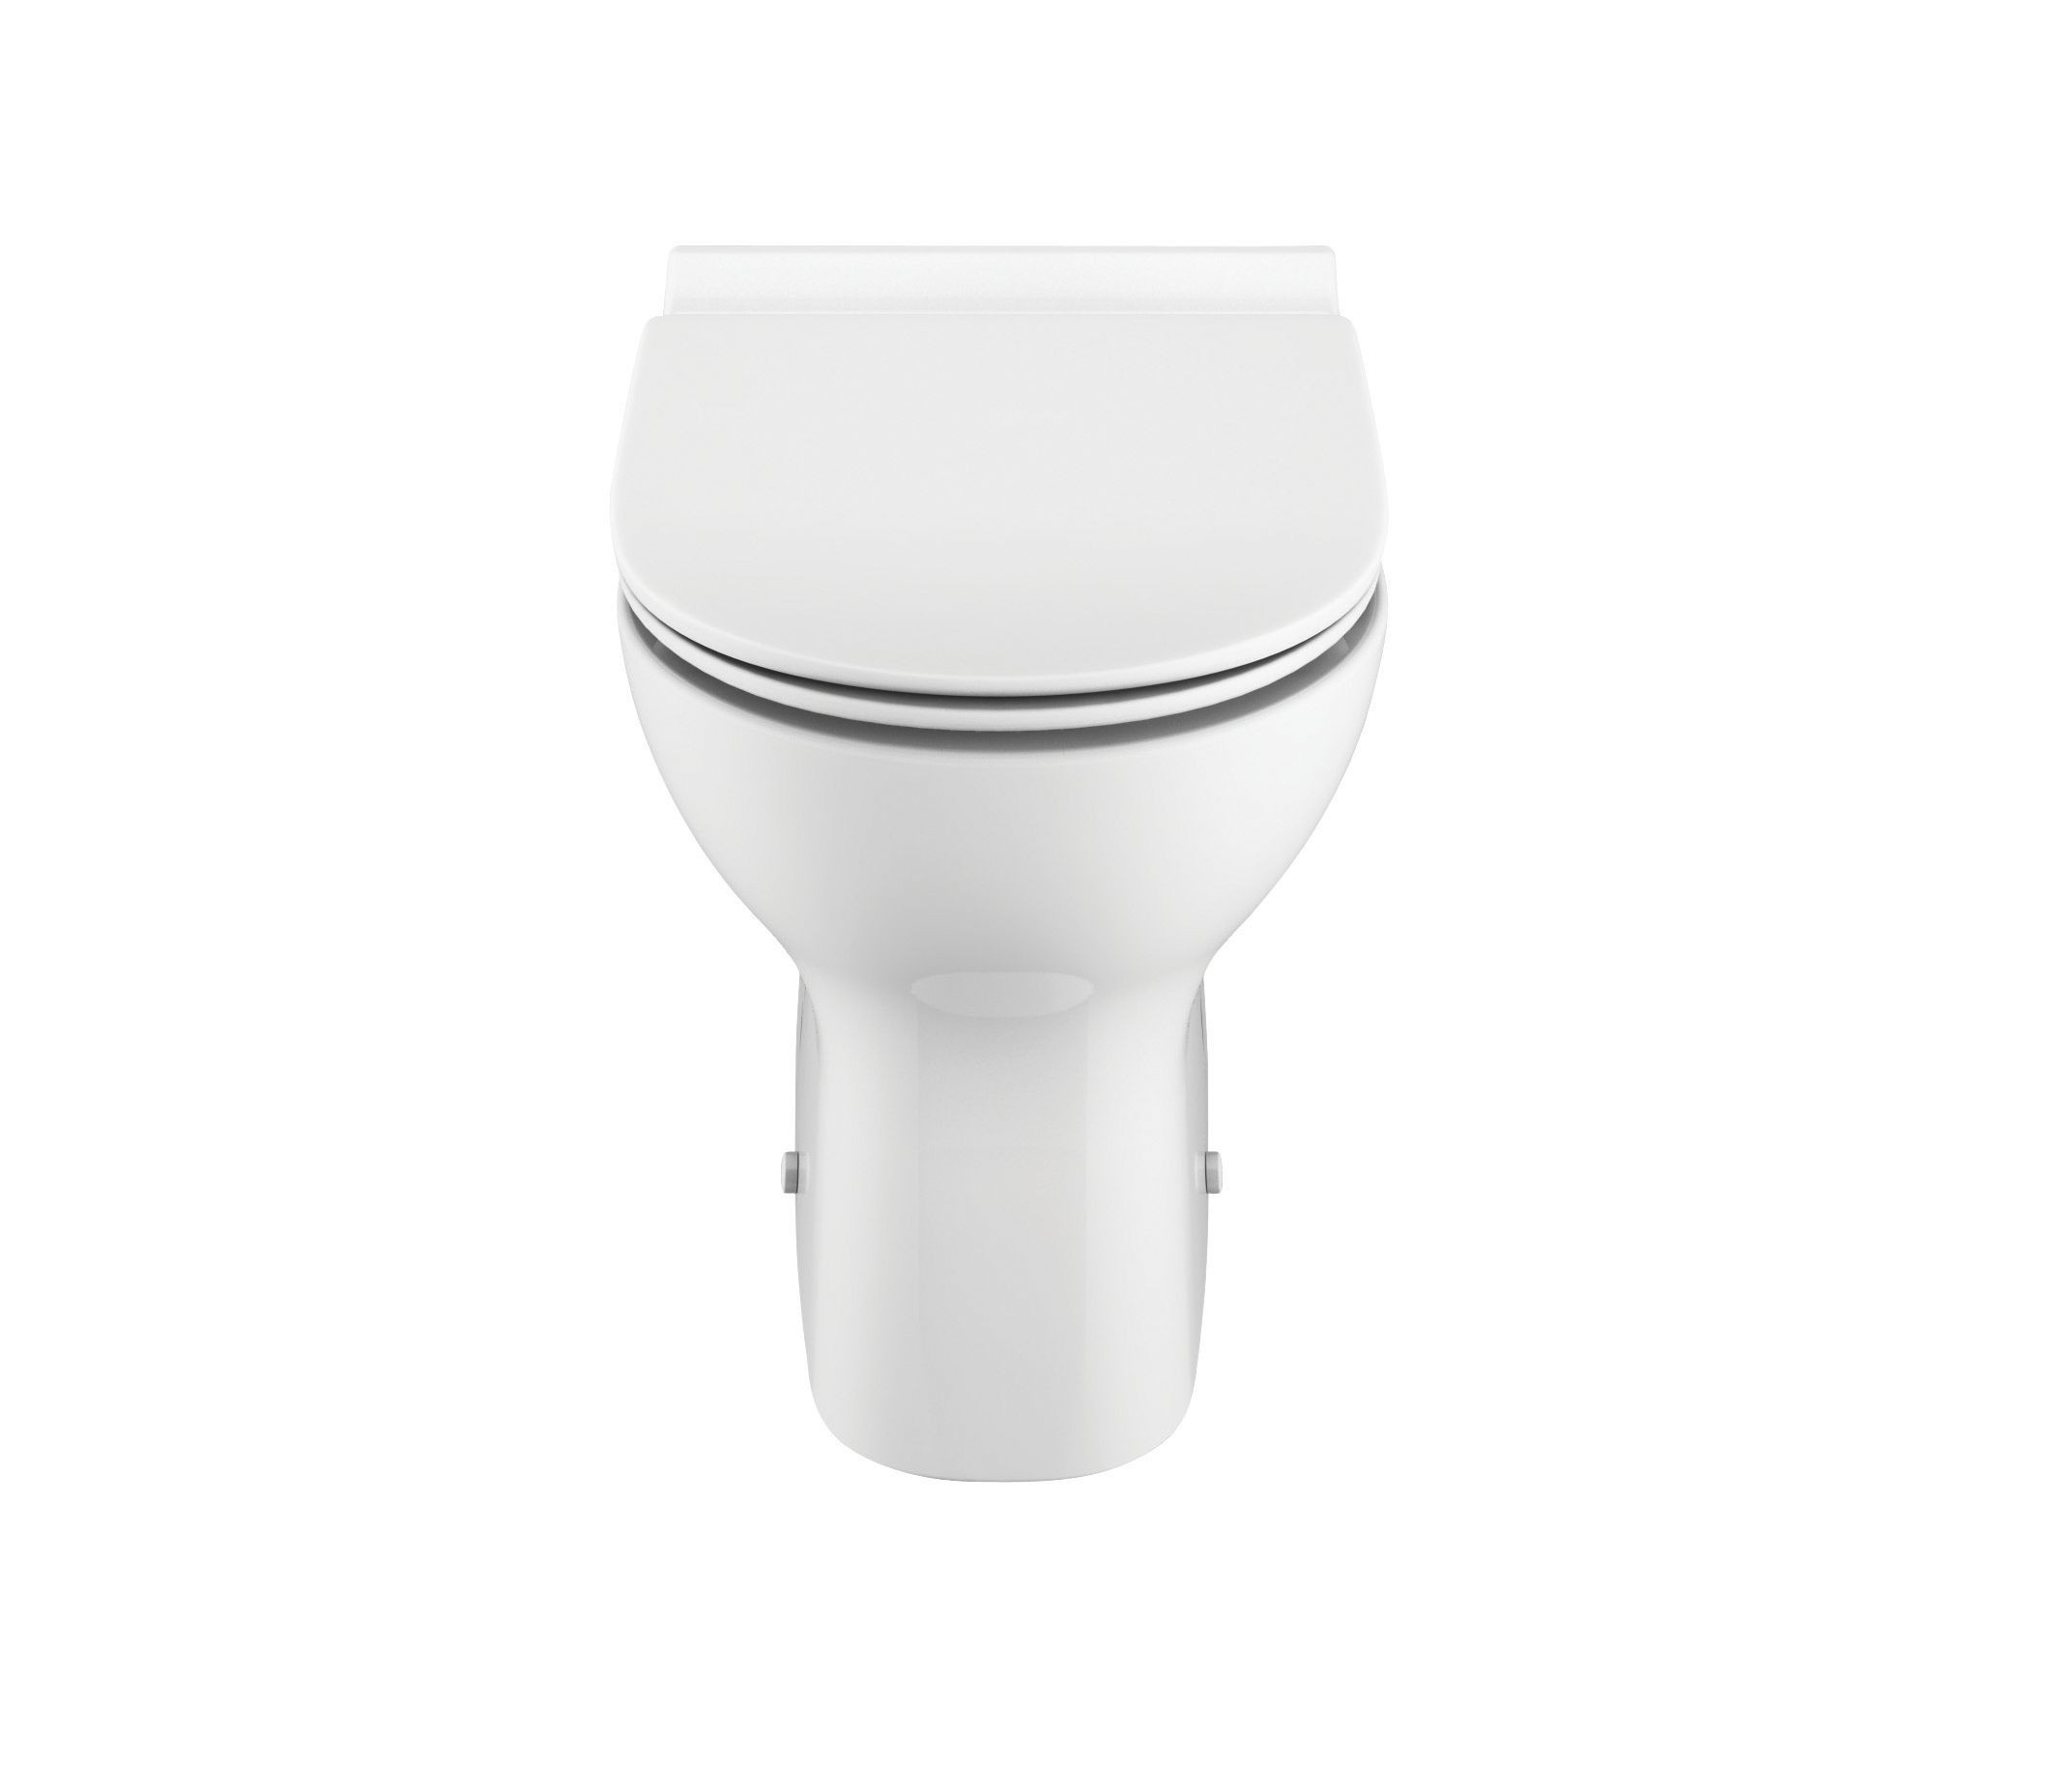 Wickes Vieste  Back To Wall Pan And Toilet Slimline Seat by Wickes